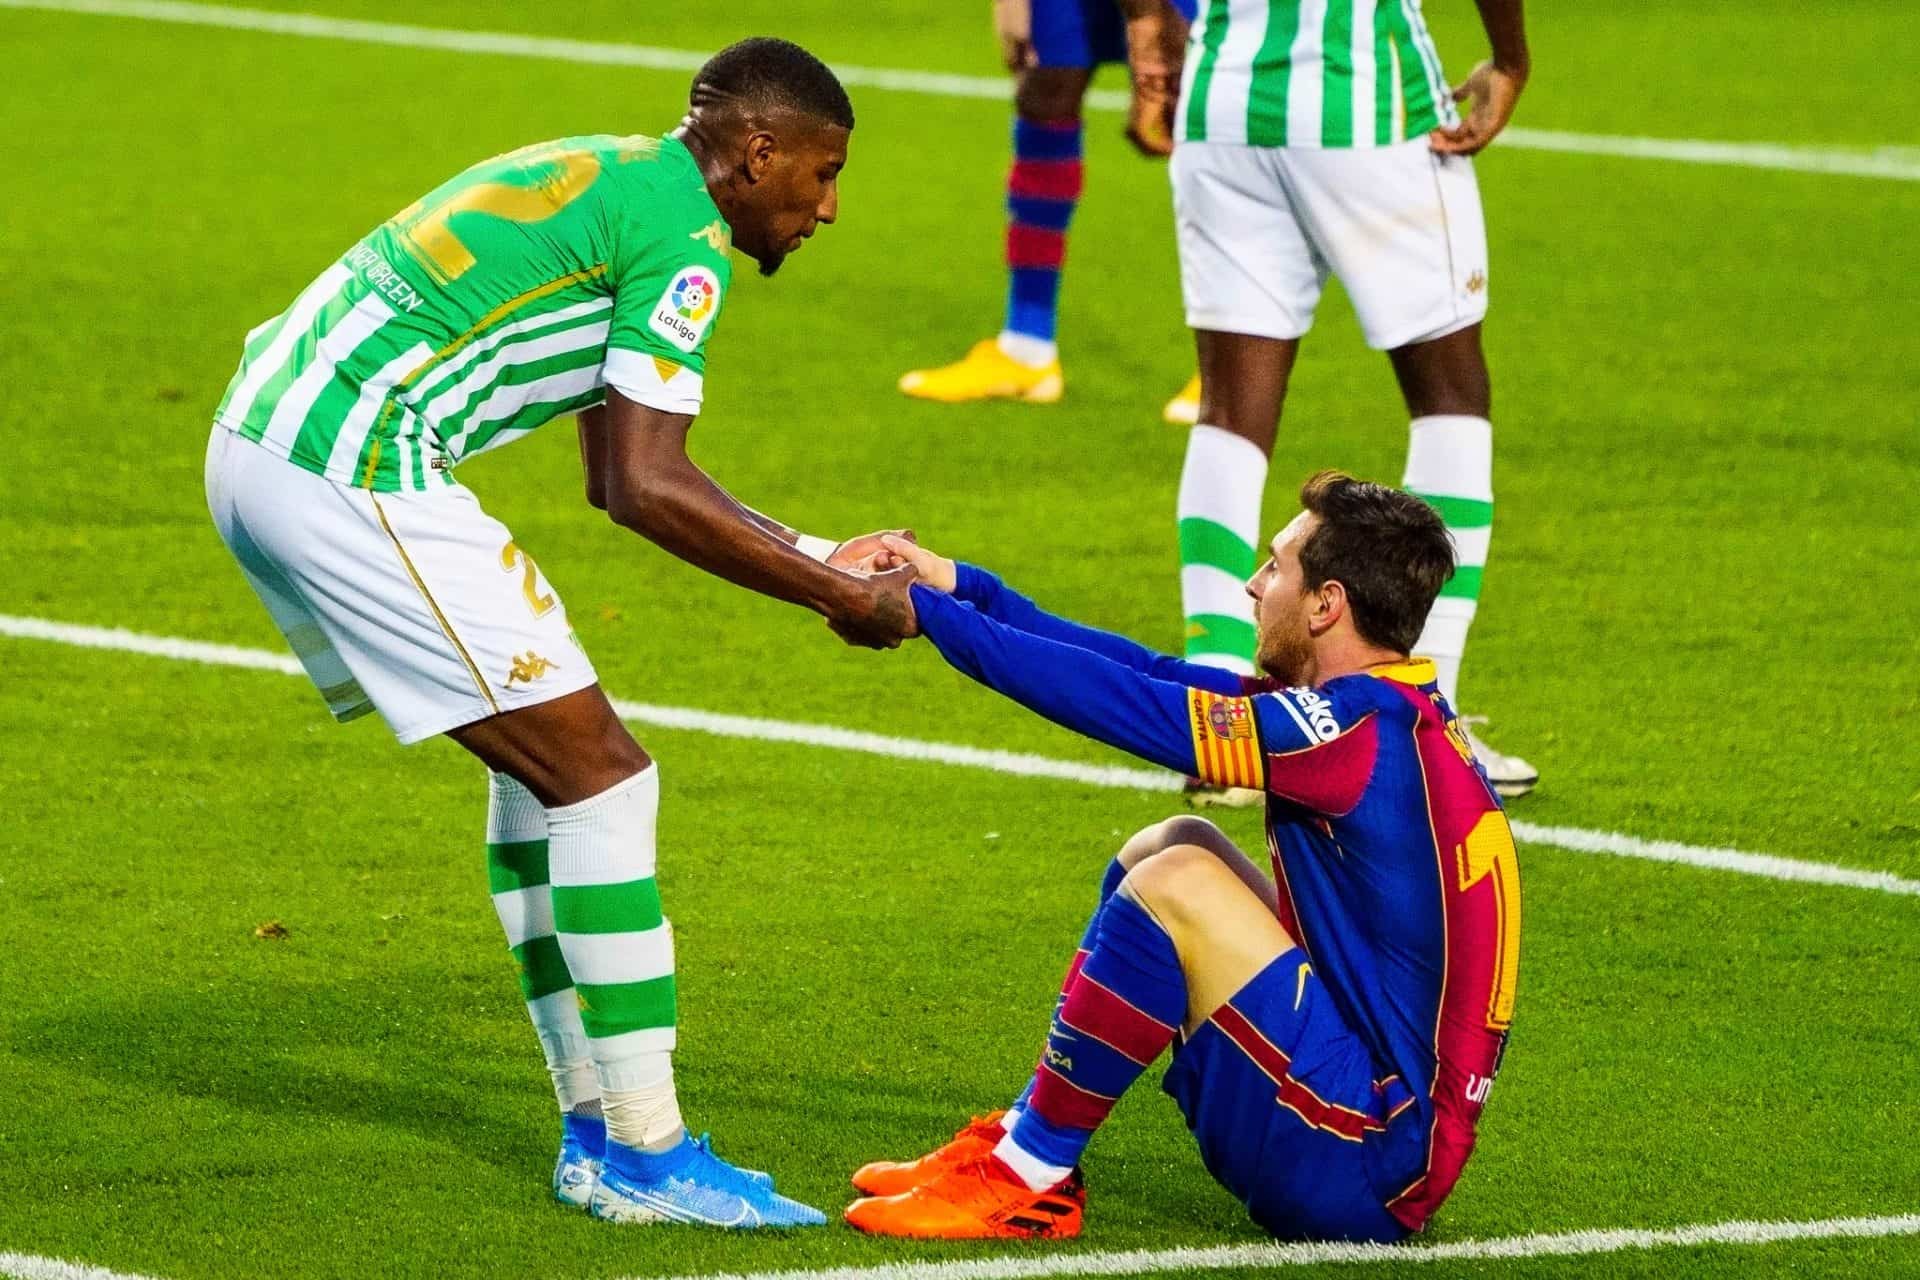 Official: Barcelona has re-signed Emerson Royal from Real Betis with a buy-back clause